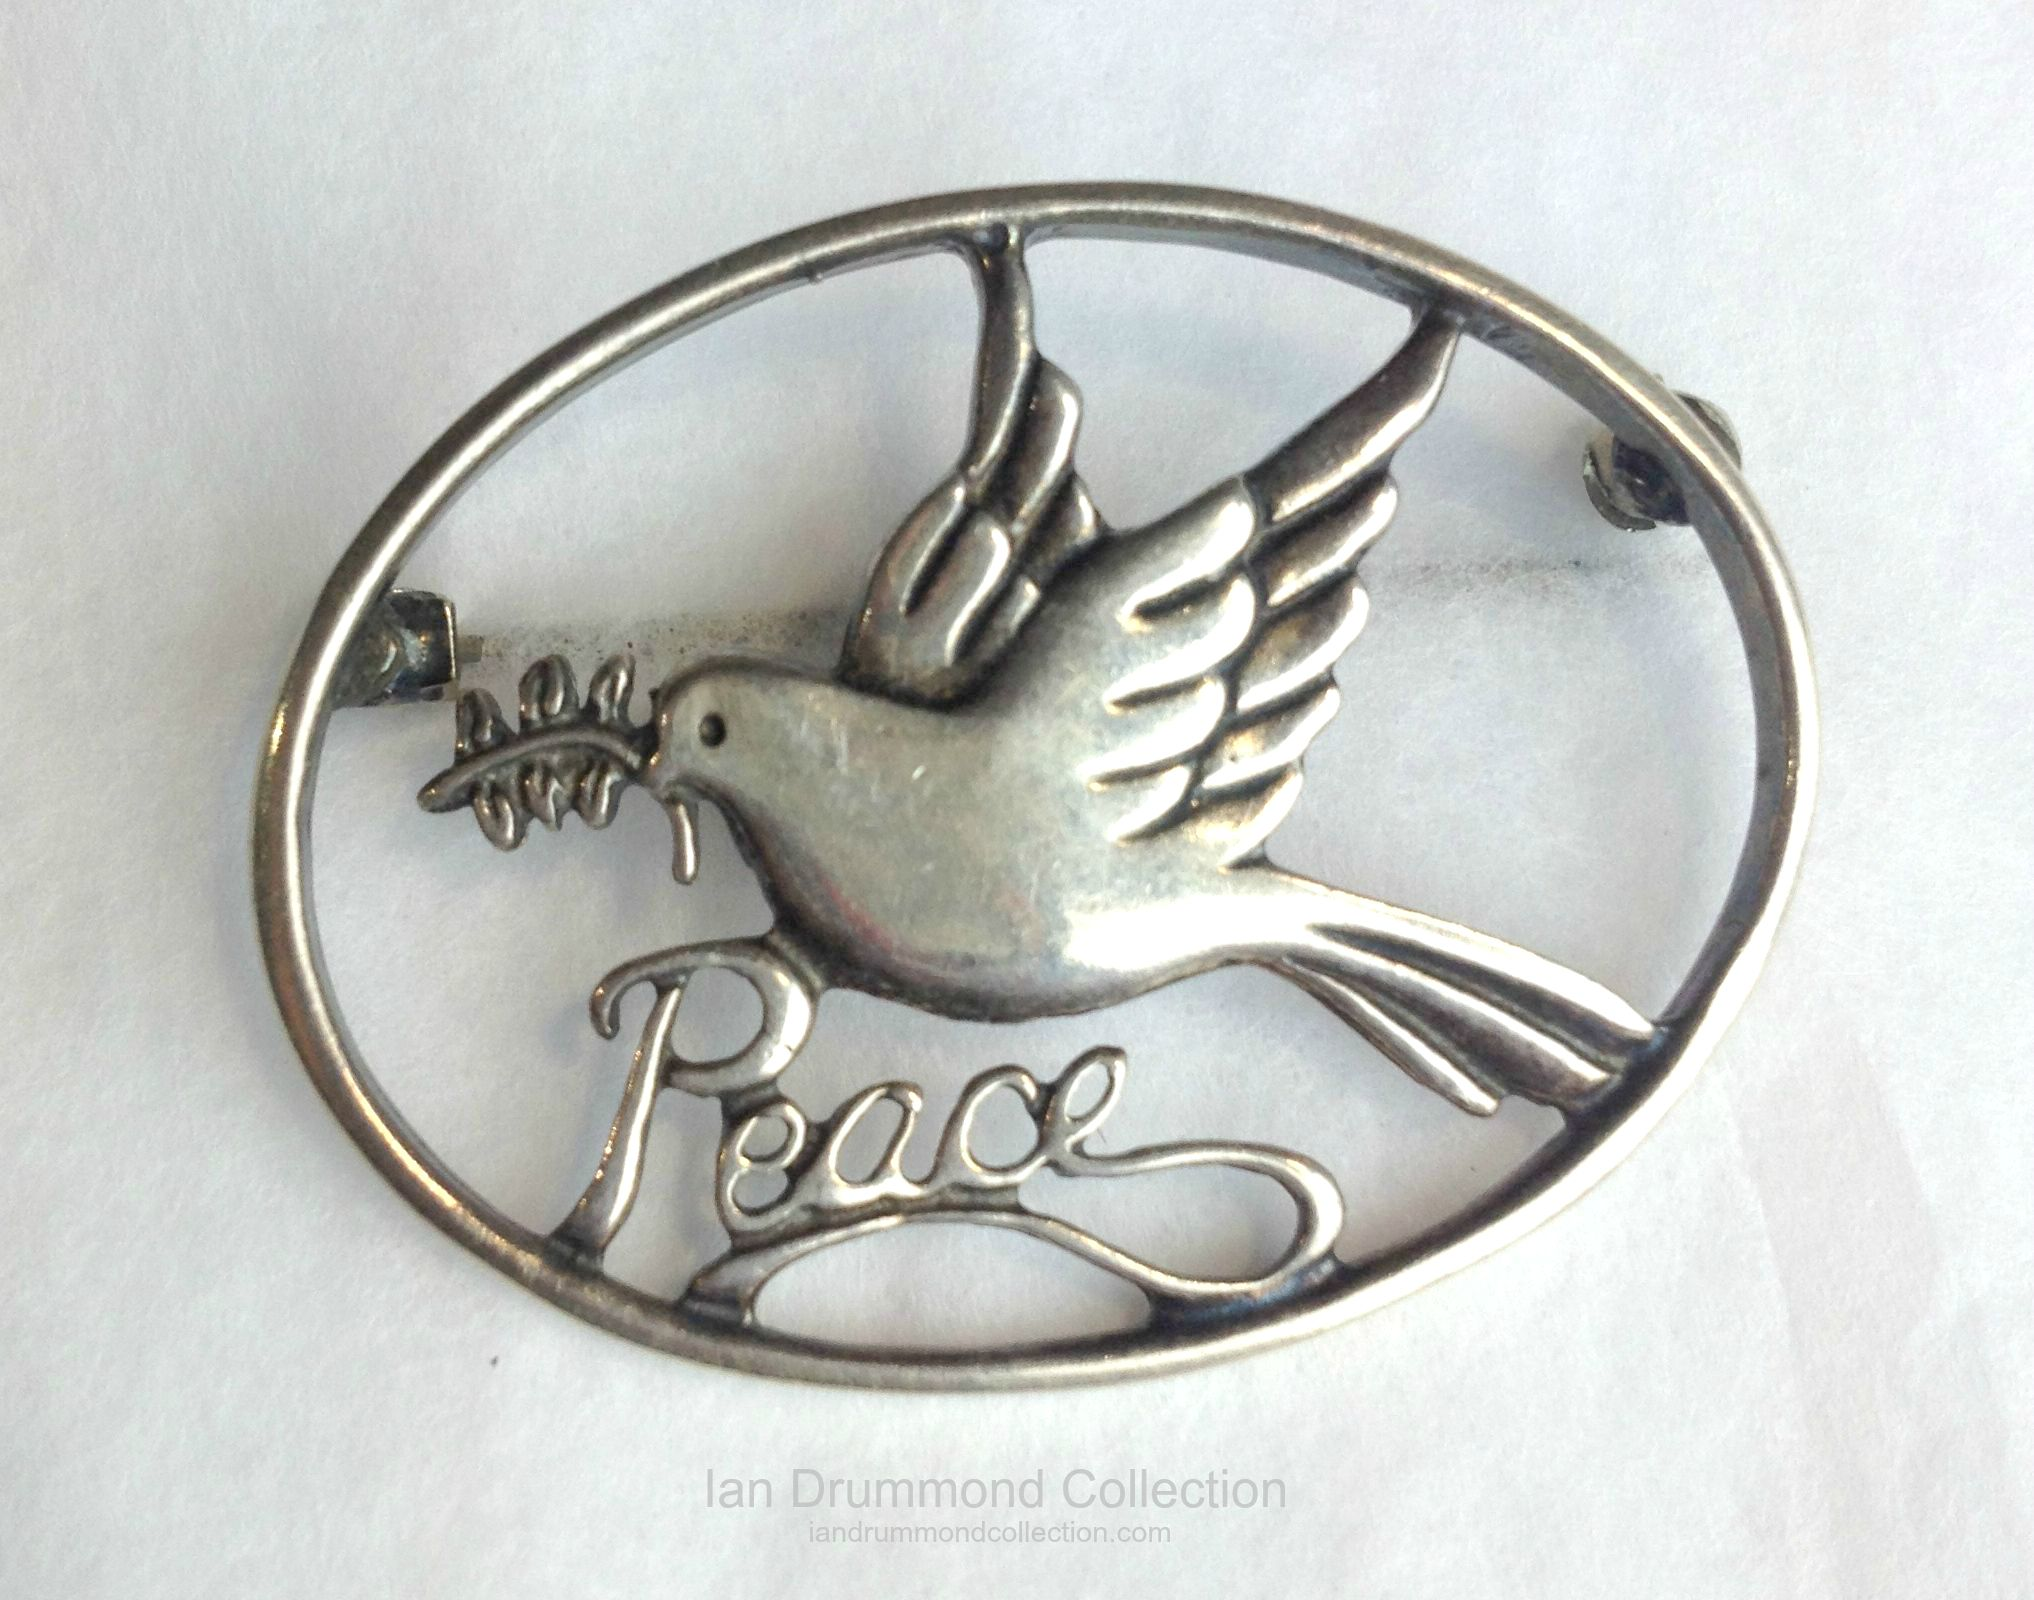 Ian Drummond Collection Toronto Vintage Clothing Show Sterling Peace Pin